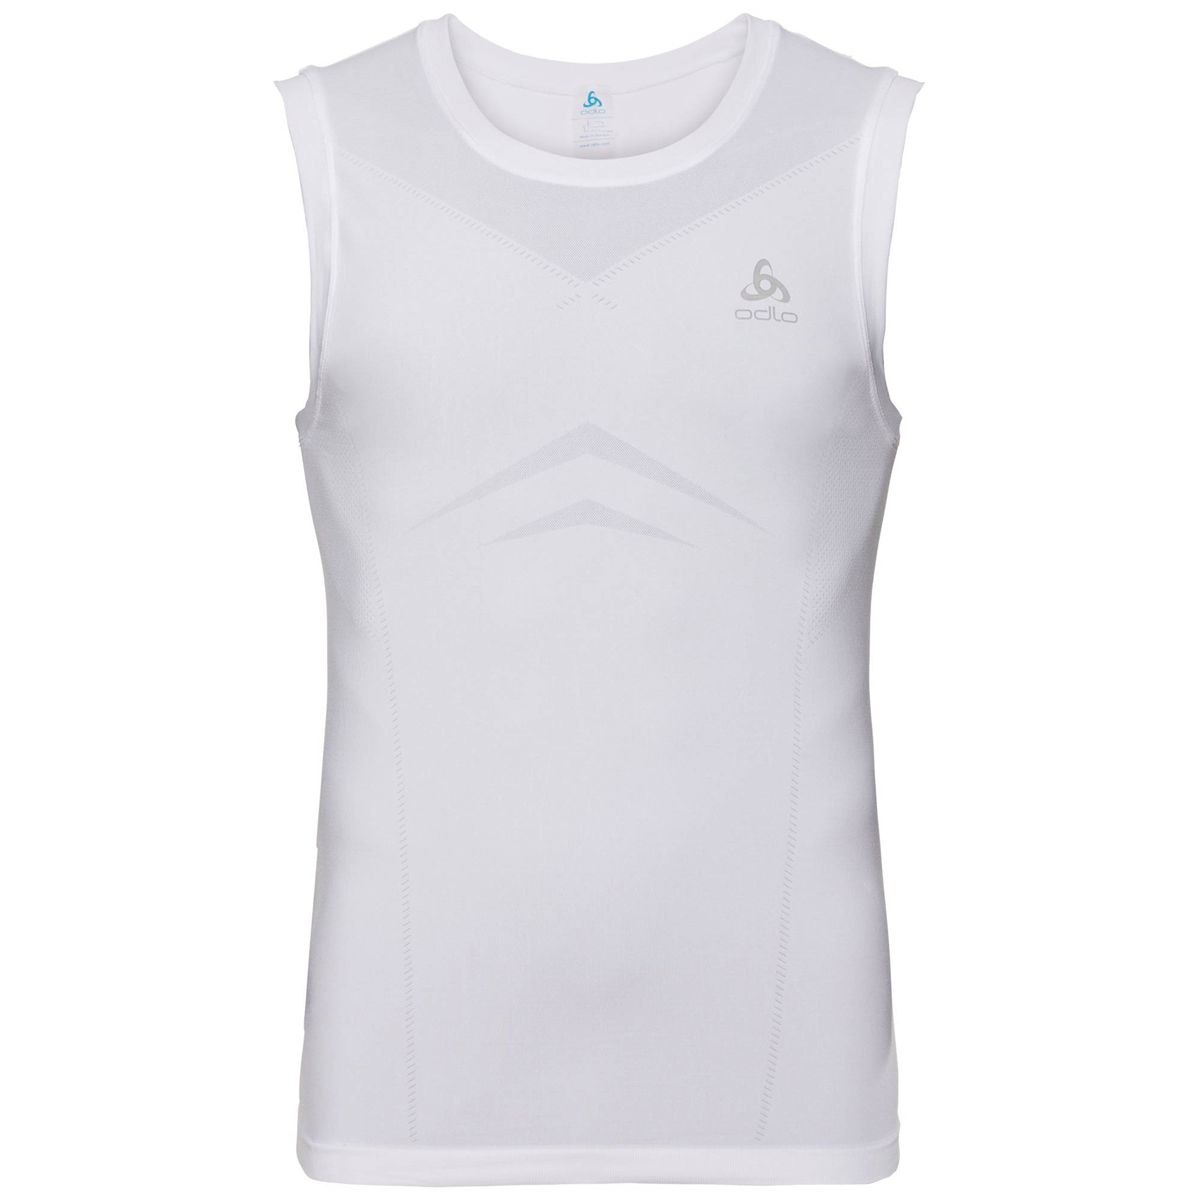 odlo PERFORMANCE LIGHT SUW TOP crew neck singlet | Vests